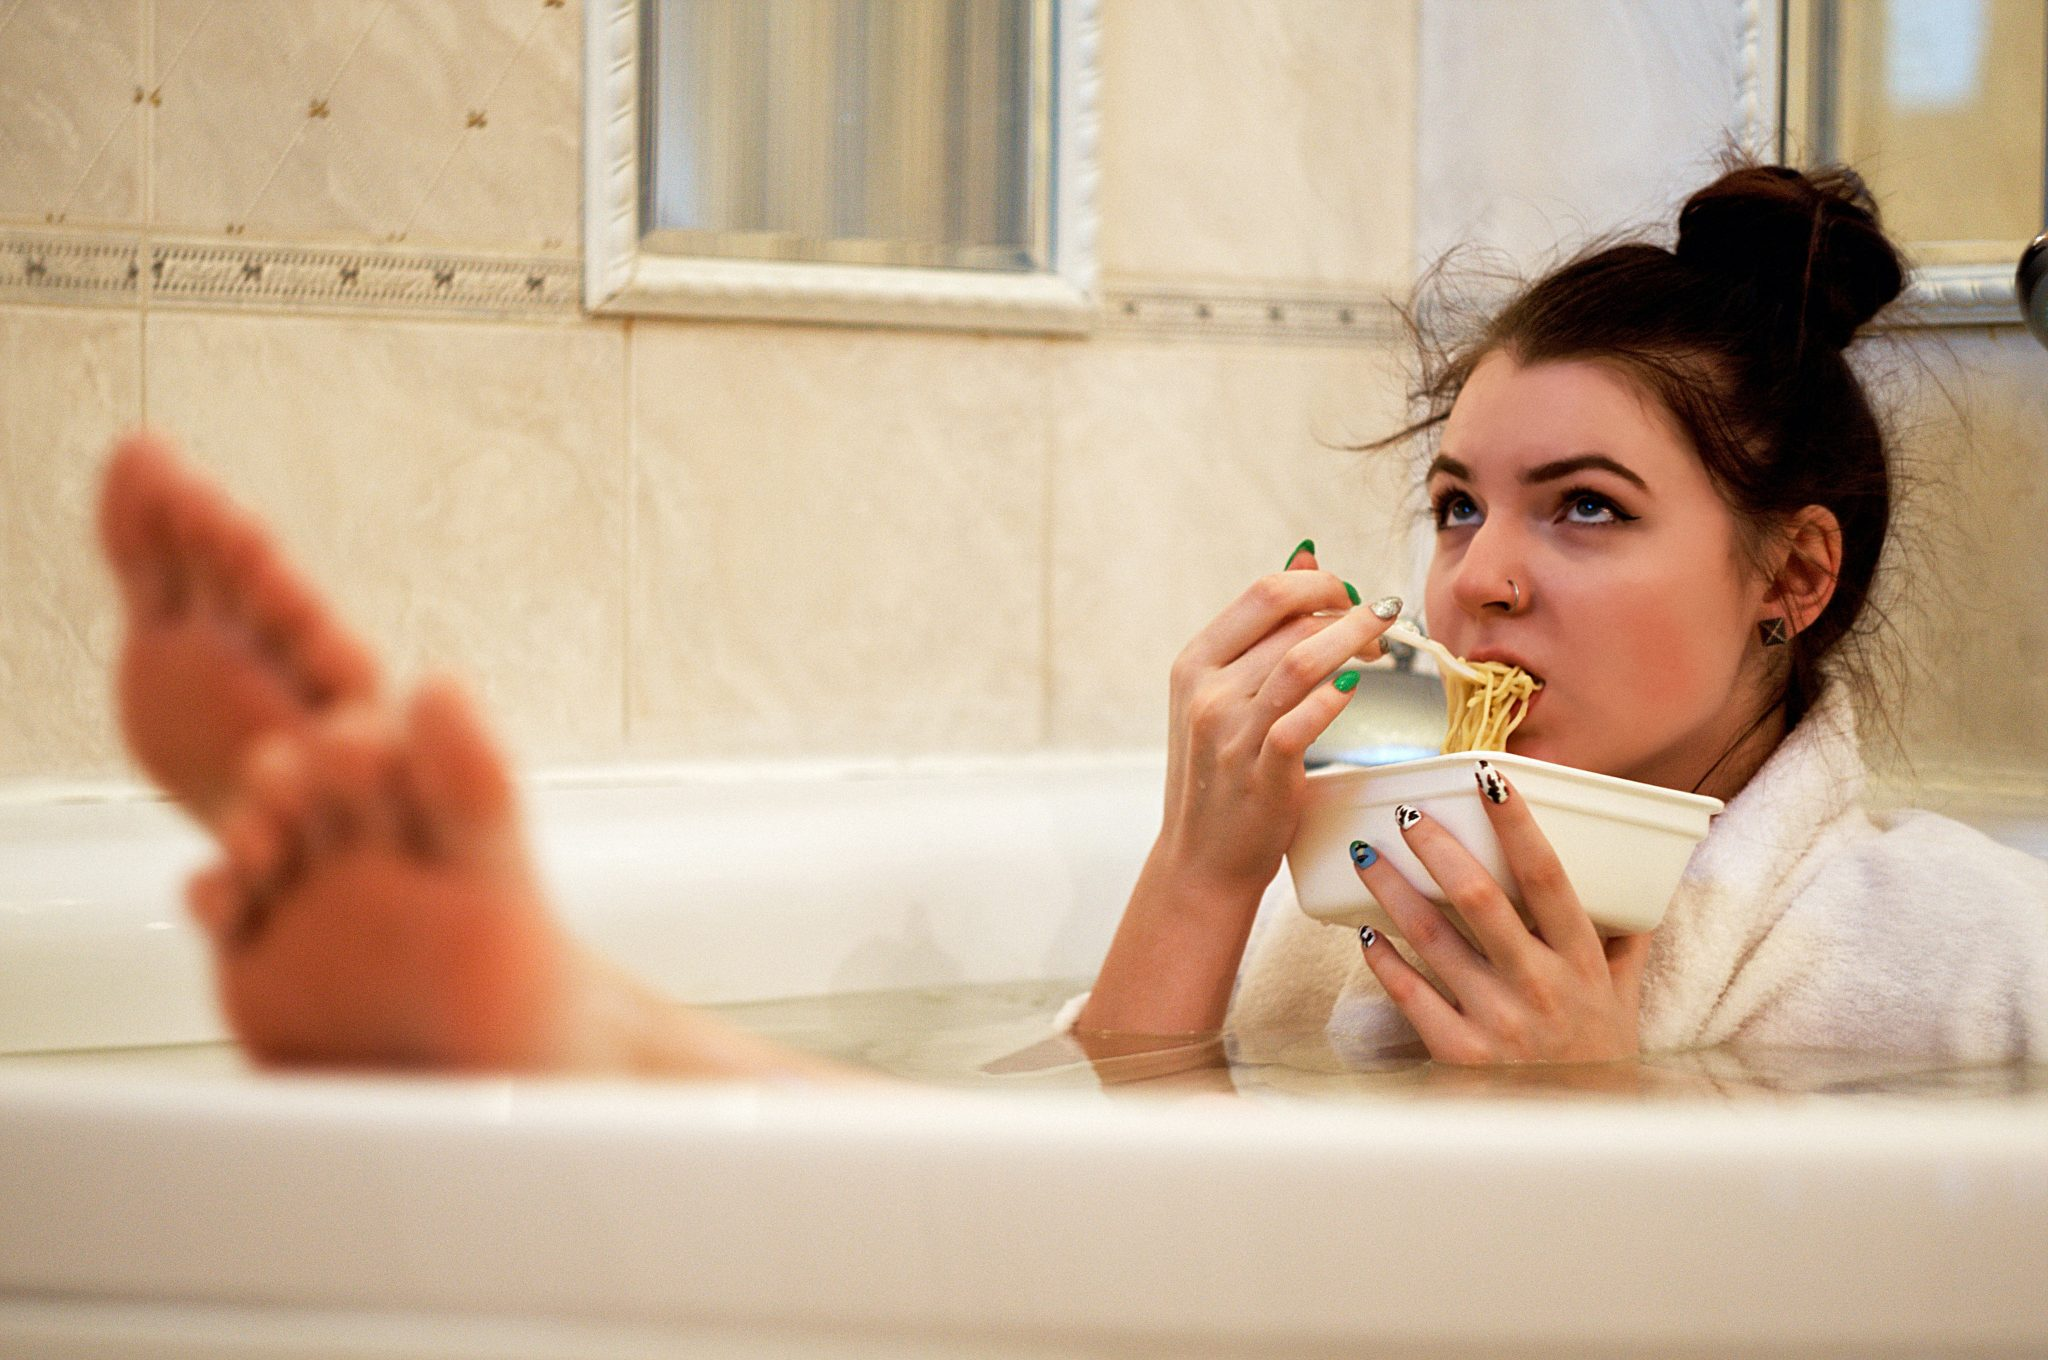 Lady eating noodles in the bath tub, looking a little unhappy